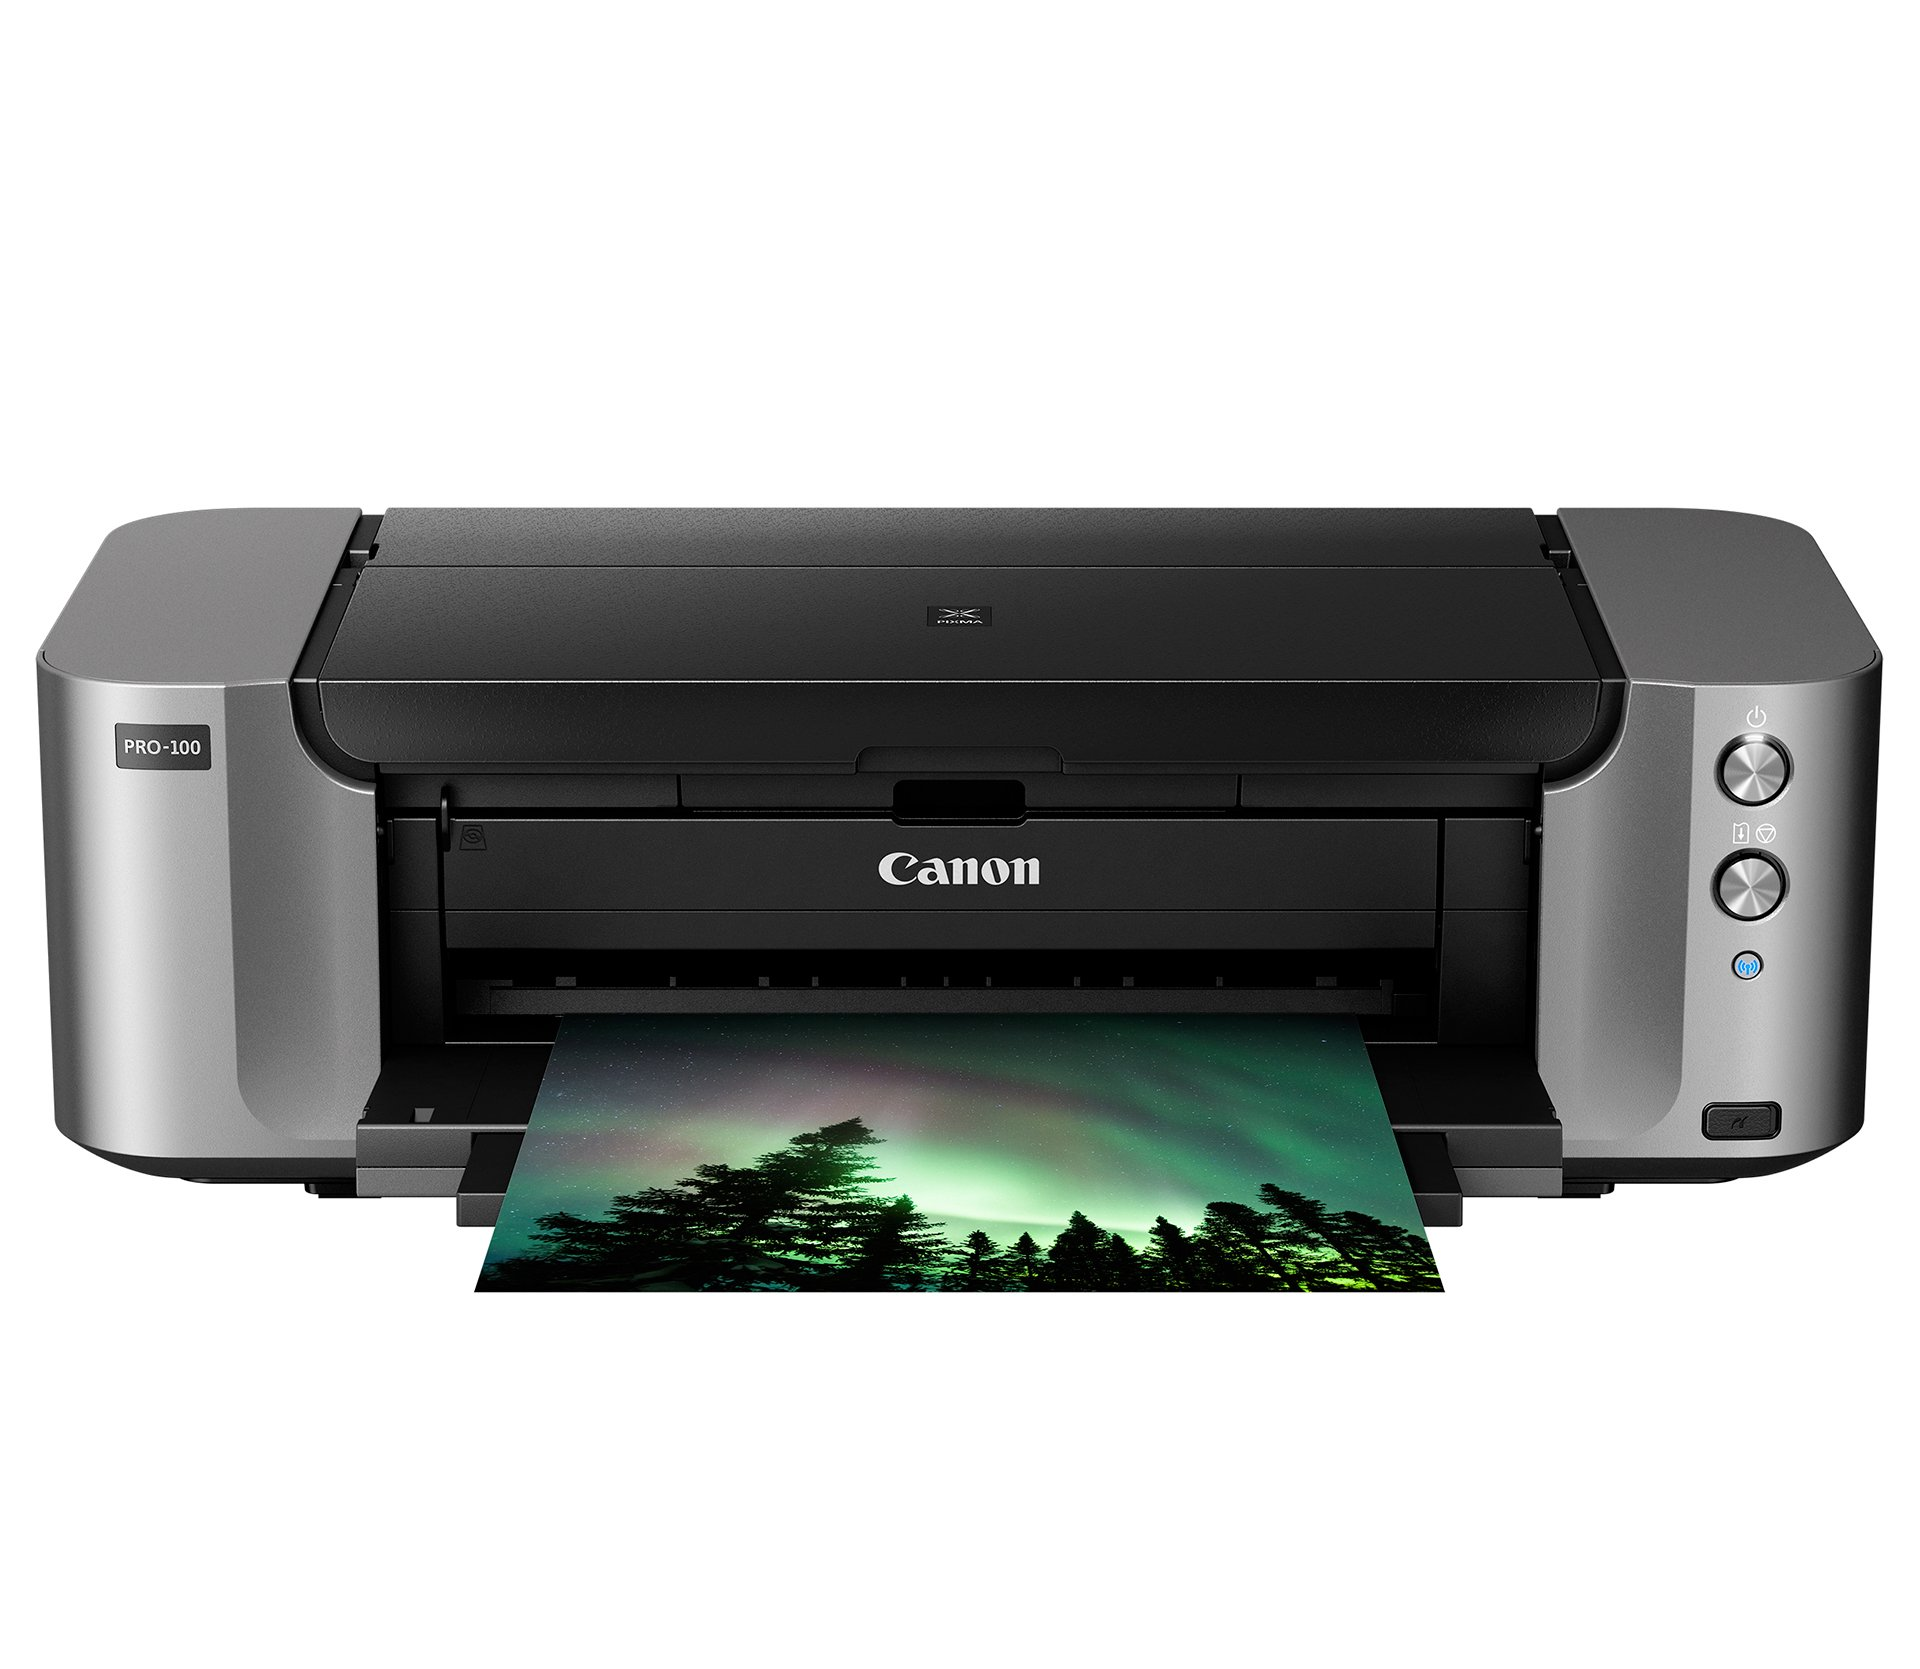 Canon PIXMA Pro-100 Wireless Color Professional Inkjet Printer with Airprint and Mobile Device Printing by Canon